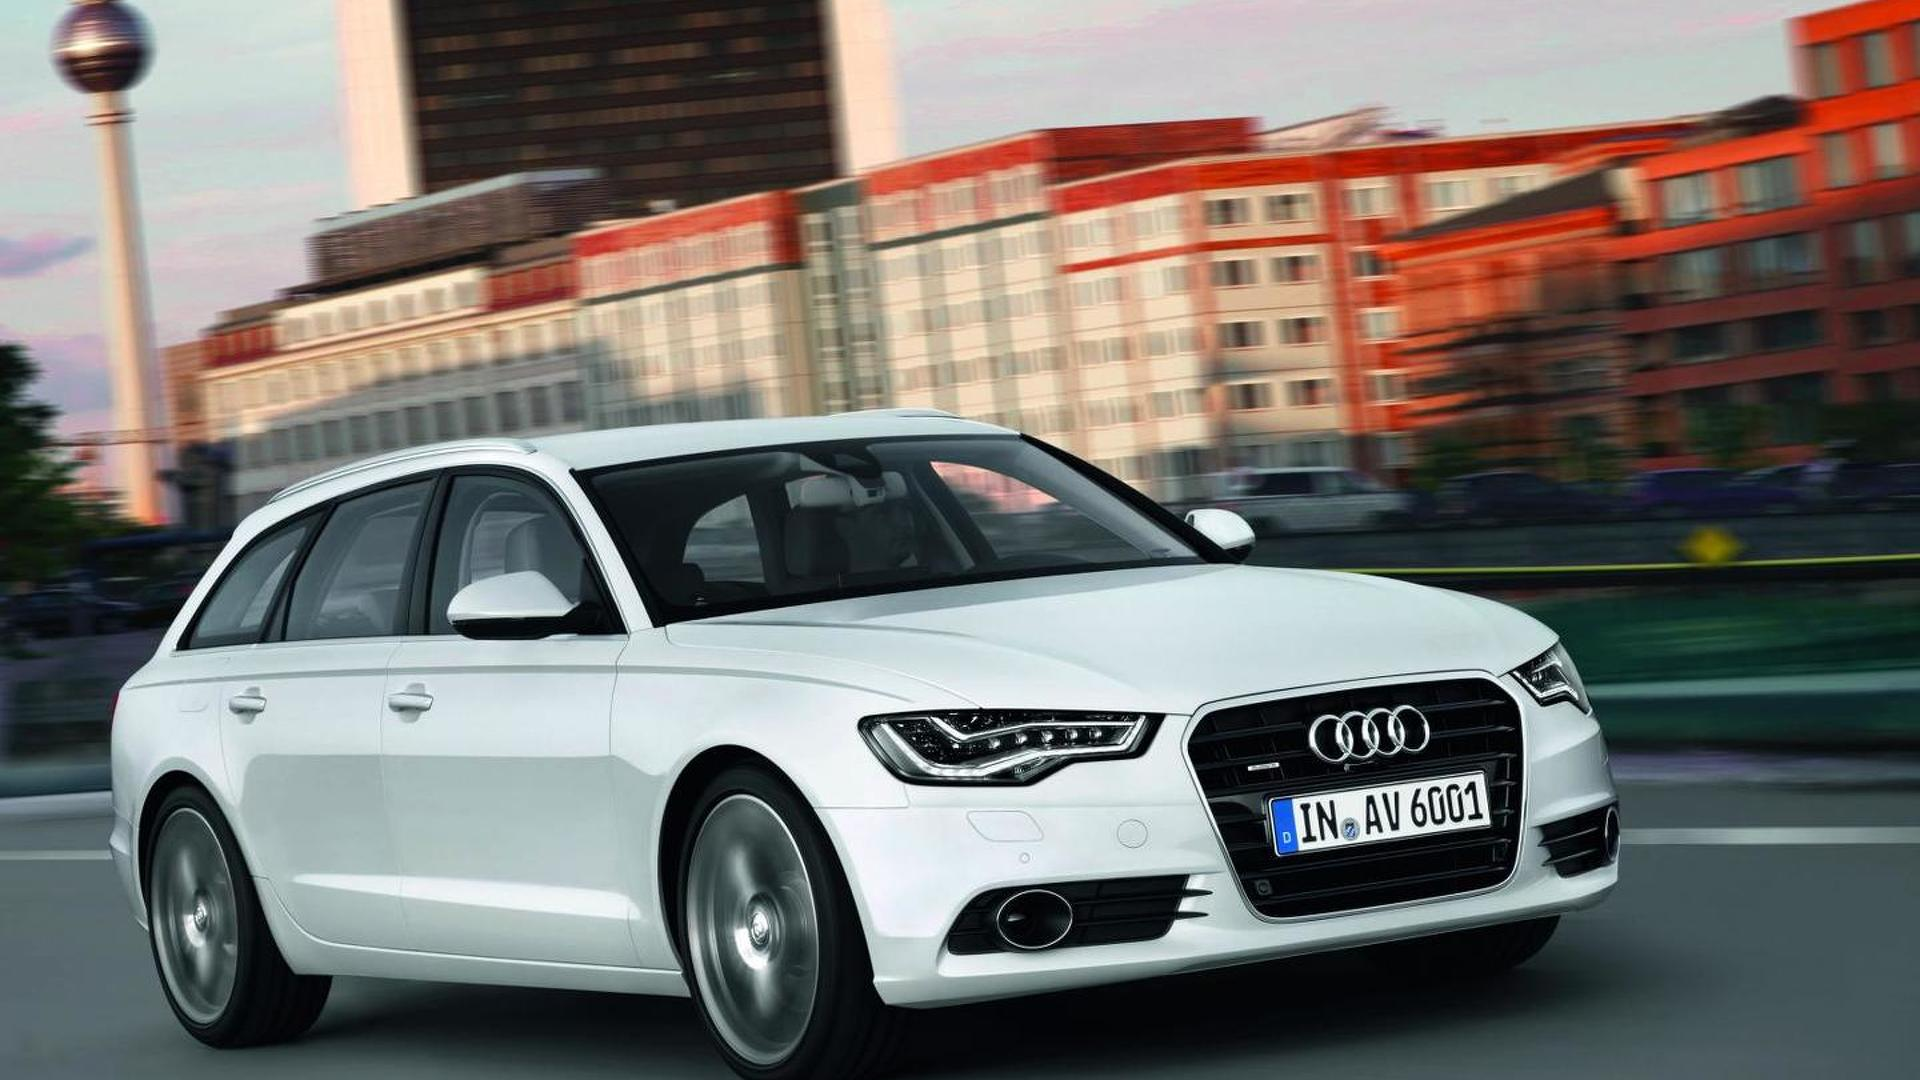 Audi A6 Avant 2.0 TDI Ultra Black Edition announced with more power Audi A Ultra on buick park avenue ultra, audi a1 ultra, buick rendezvous ultra, lexus es 350 ultra, audi r18 ultra,